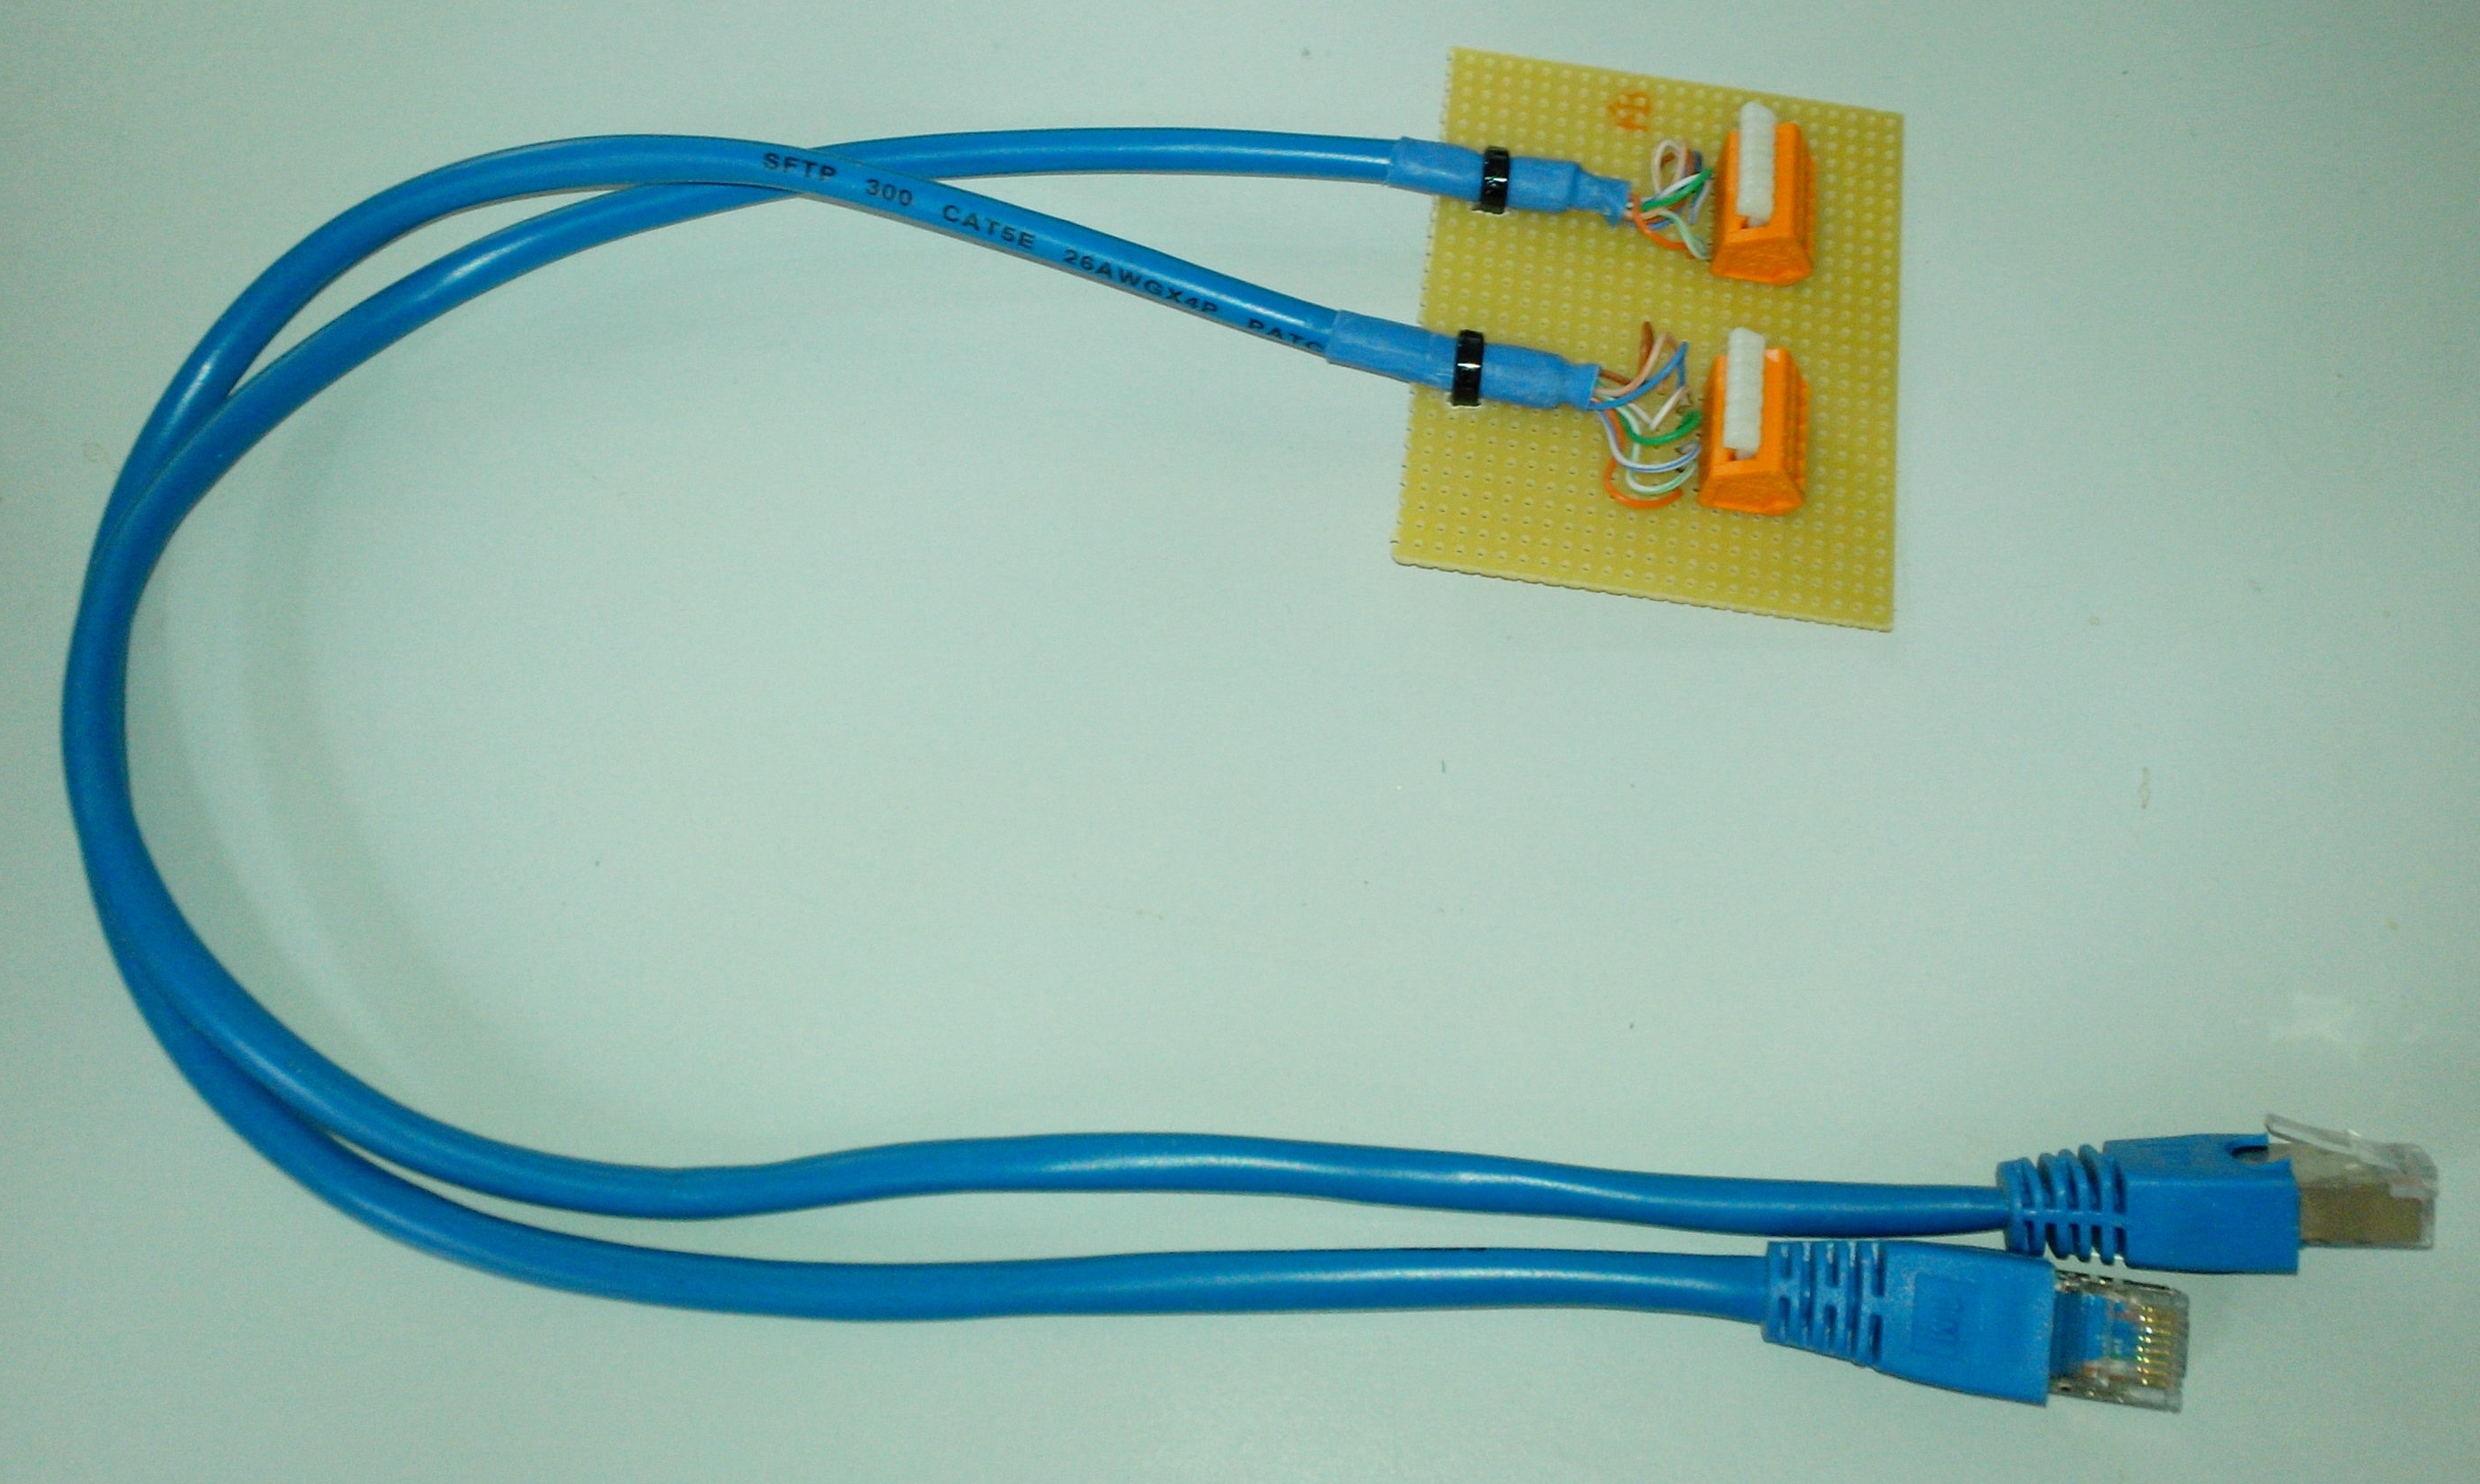 bananapi_adapter_testkabel